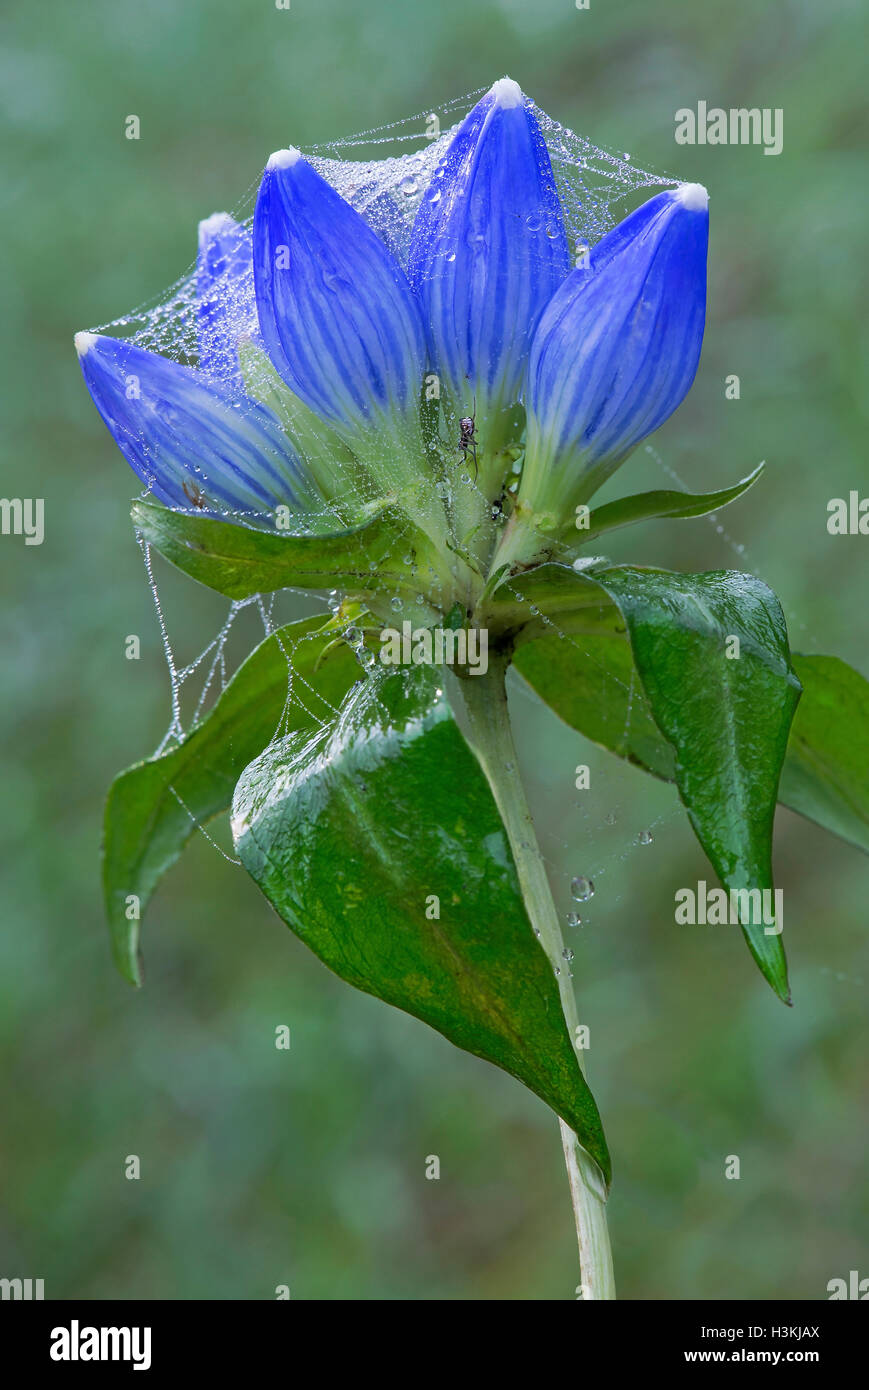 Gentians Gentiana andrewsii with dewy spider webs, Eastern USA - Stock Image